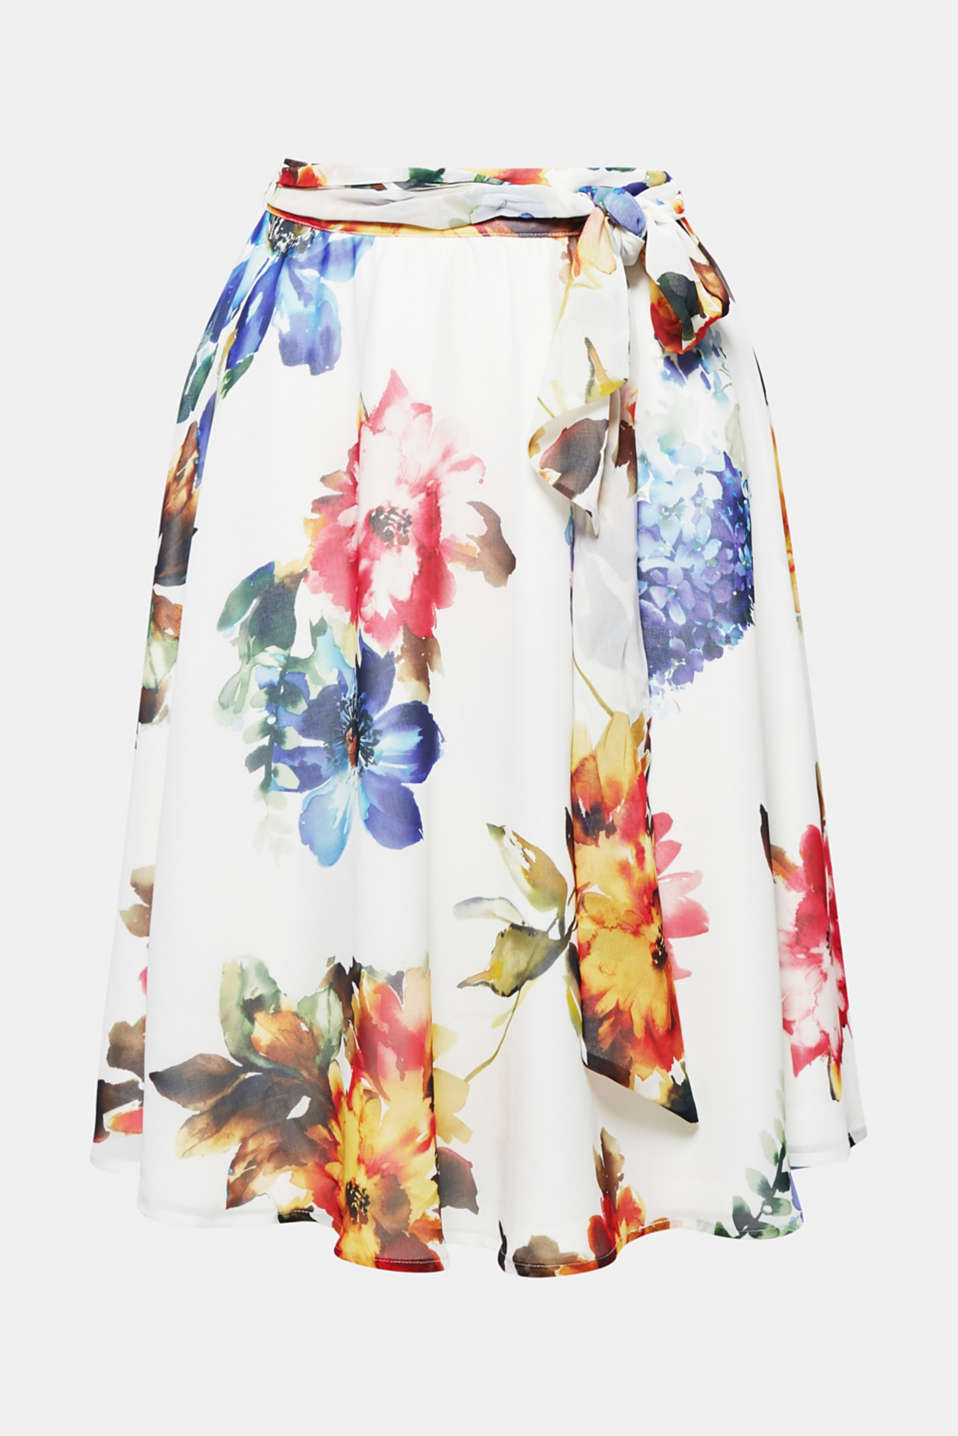 Swirl into summer: bell-shaped, flared skirt in delicate chiffon with an elaborate, colourful floral print. -Just perfect!